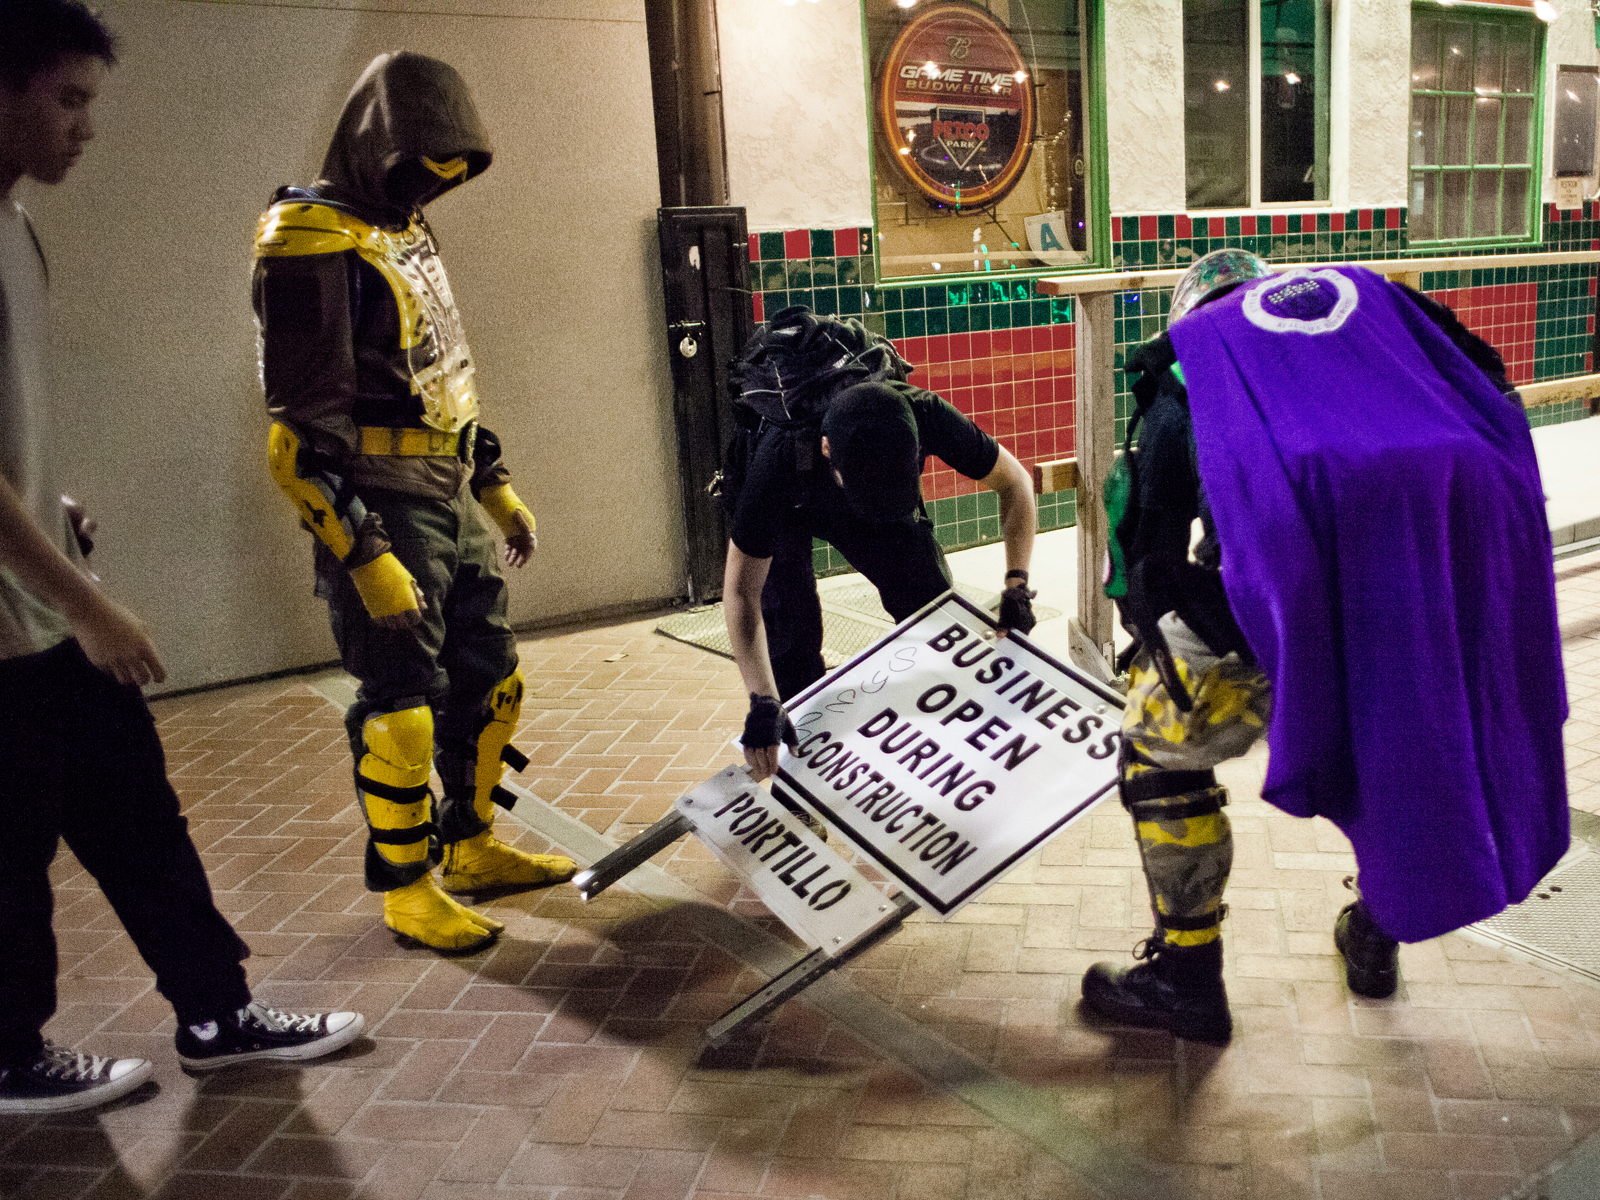 Most of the time, nothing mentionable happens during the nightly patrols in the gaslamp district. The most common tasks for the heroes are hence to dissolve bar fights and calling cabs for drunks. And sometimes, it is just about re-erecting a fallen over construction sign.